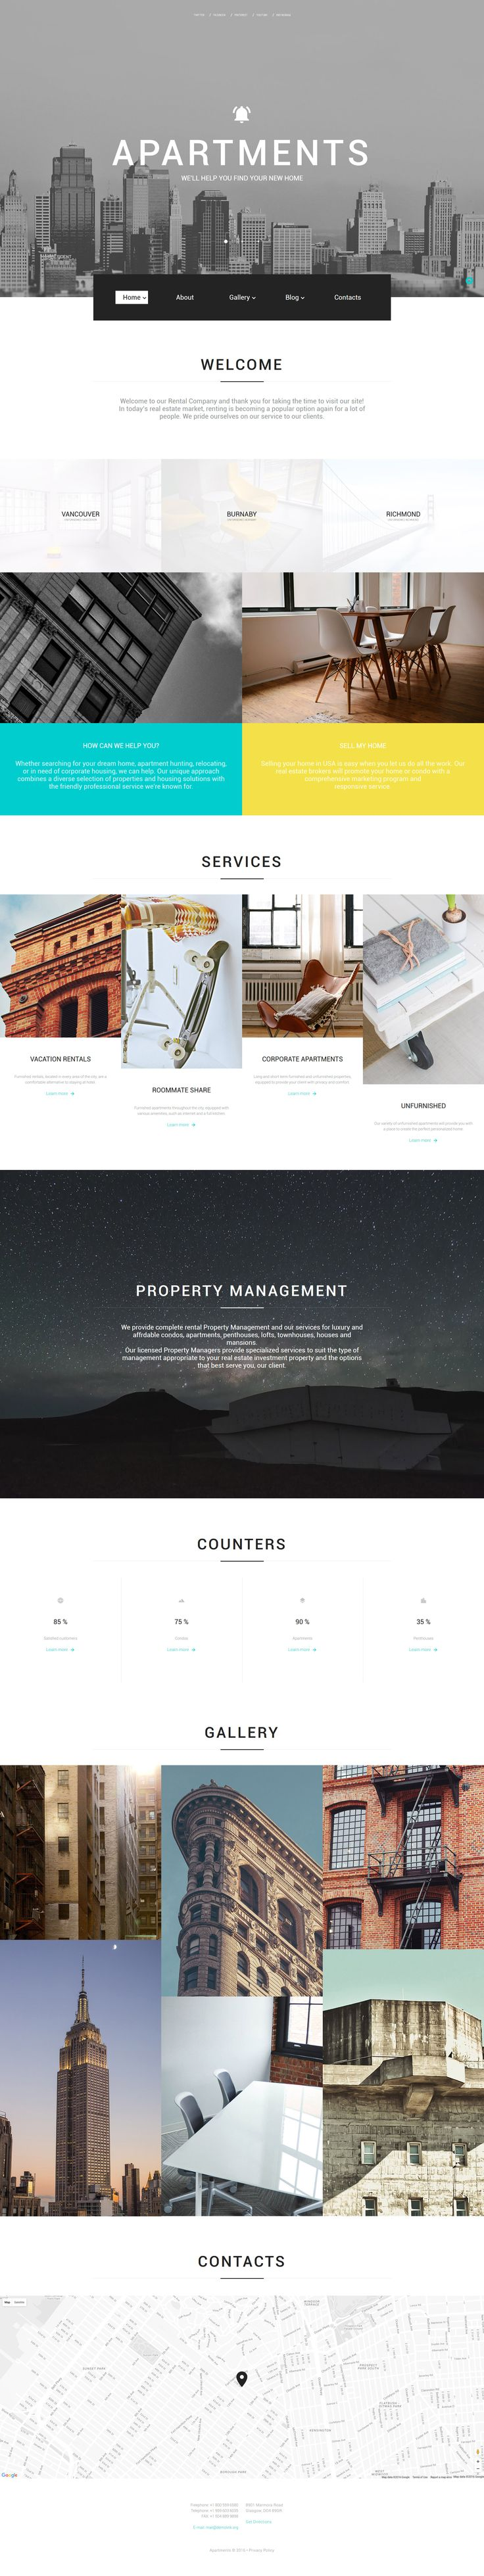 I am drawn to the minimalist design. Clean. I like that appears easy to navigate.